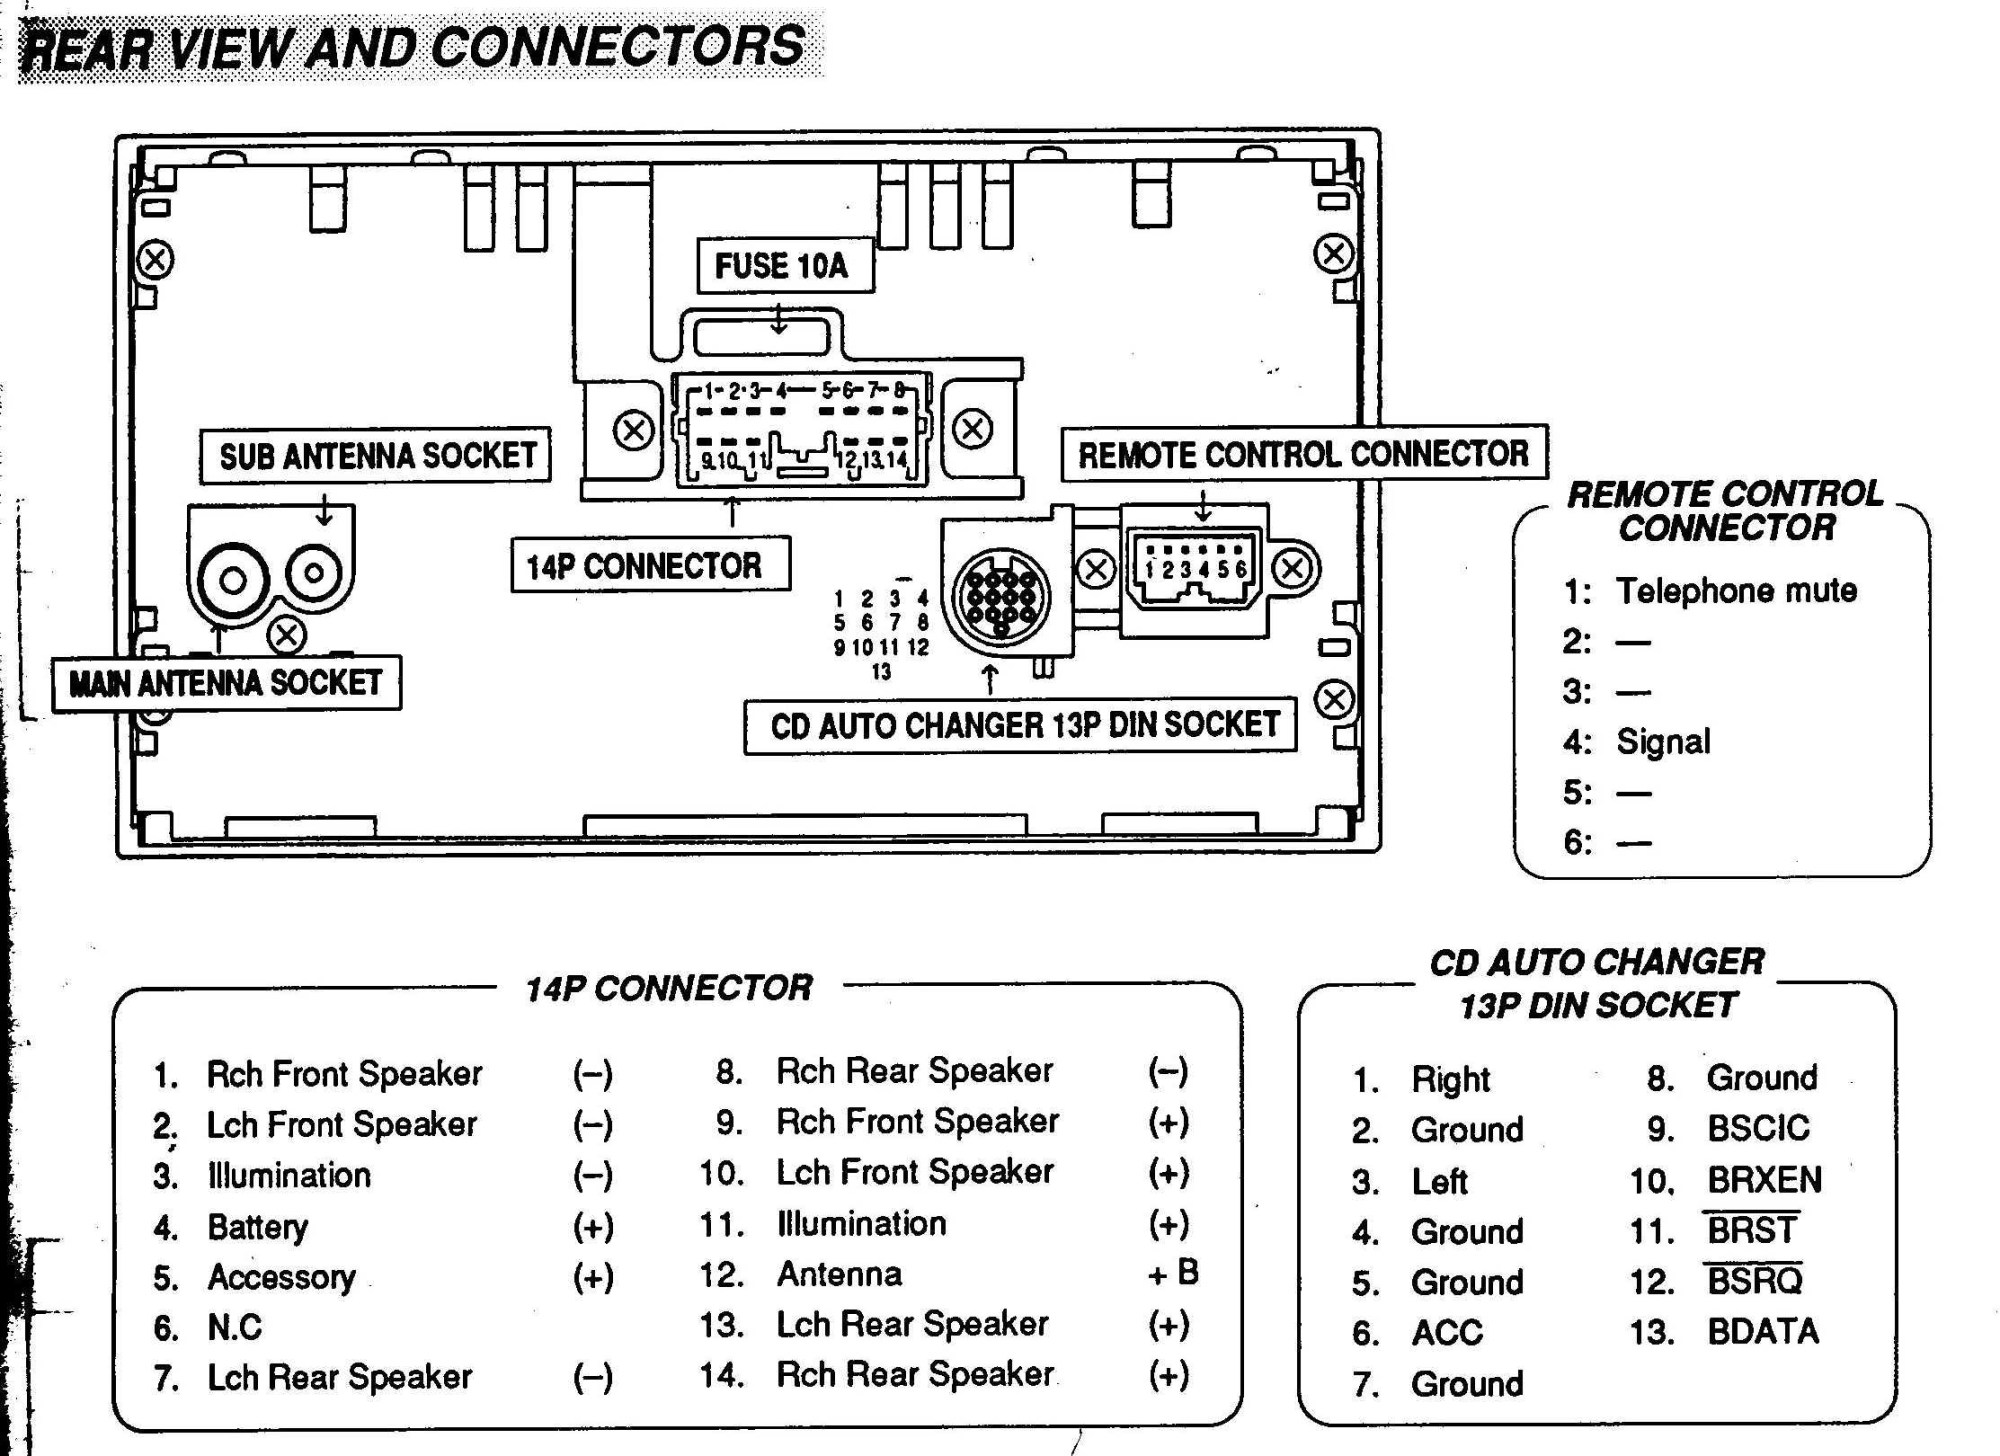 hight resolution of mitsubishi endeavor wiring diagram home wiring diagram 2004 mitsubishi endeavor wiring diagram get free image about wiring